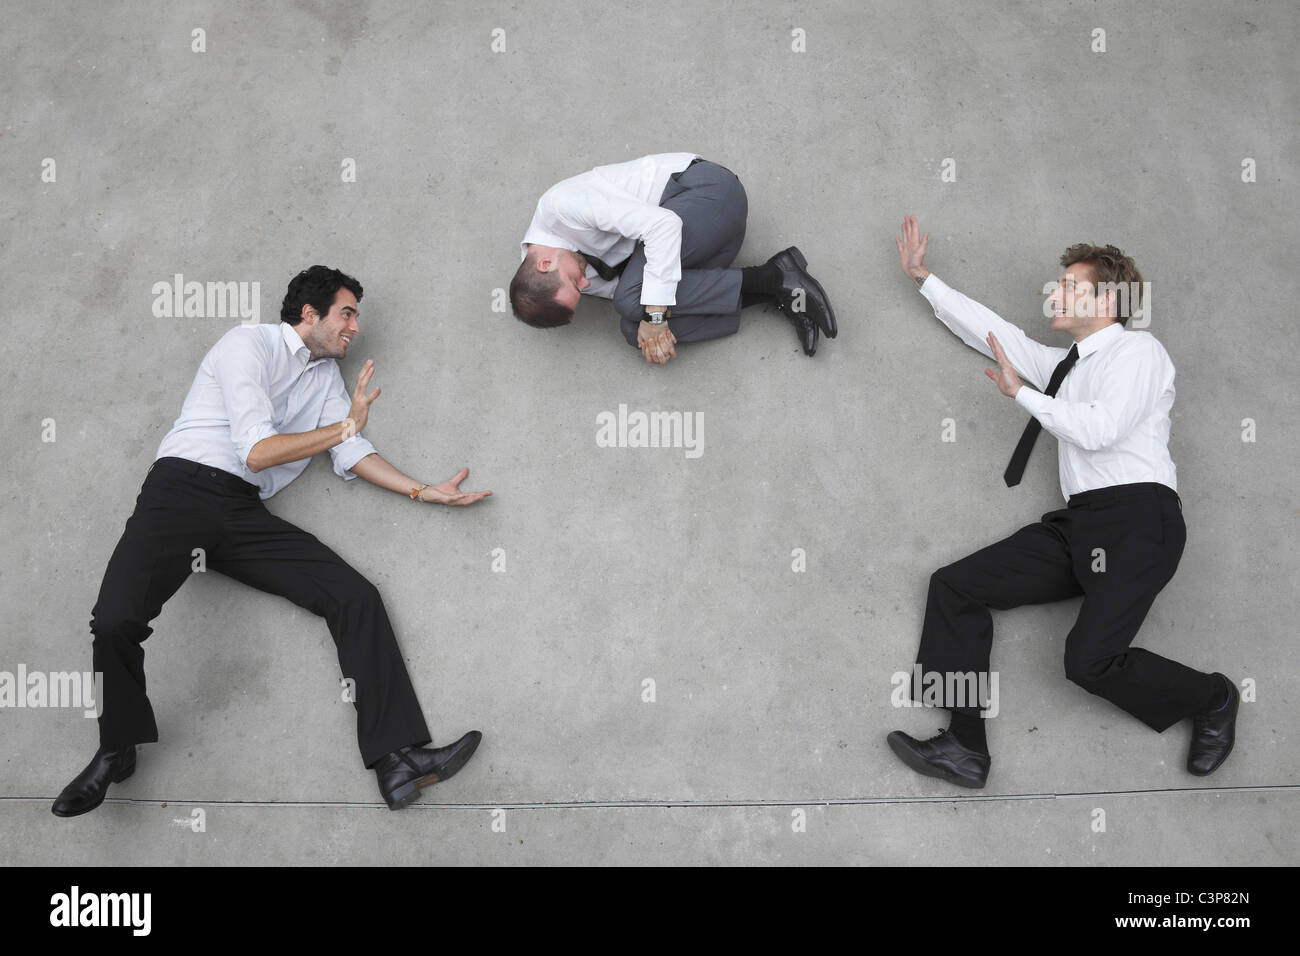 Businessmen balancing on rope,playing with collegue - Stock Image